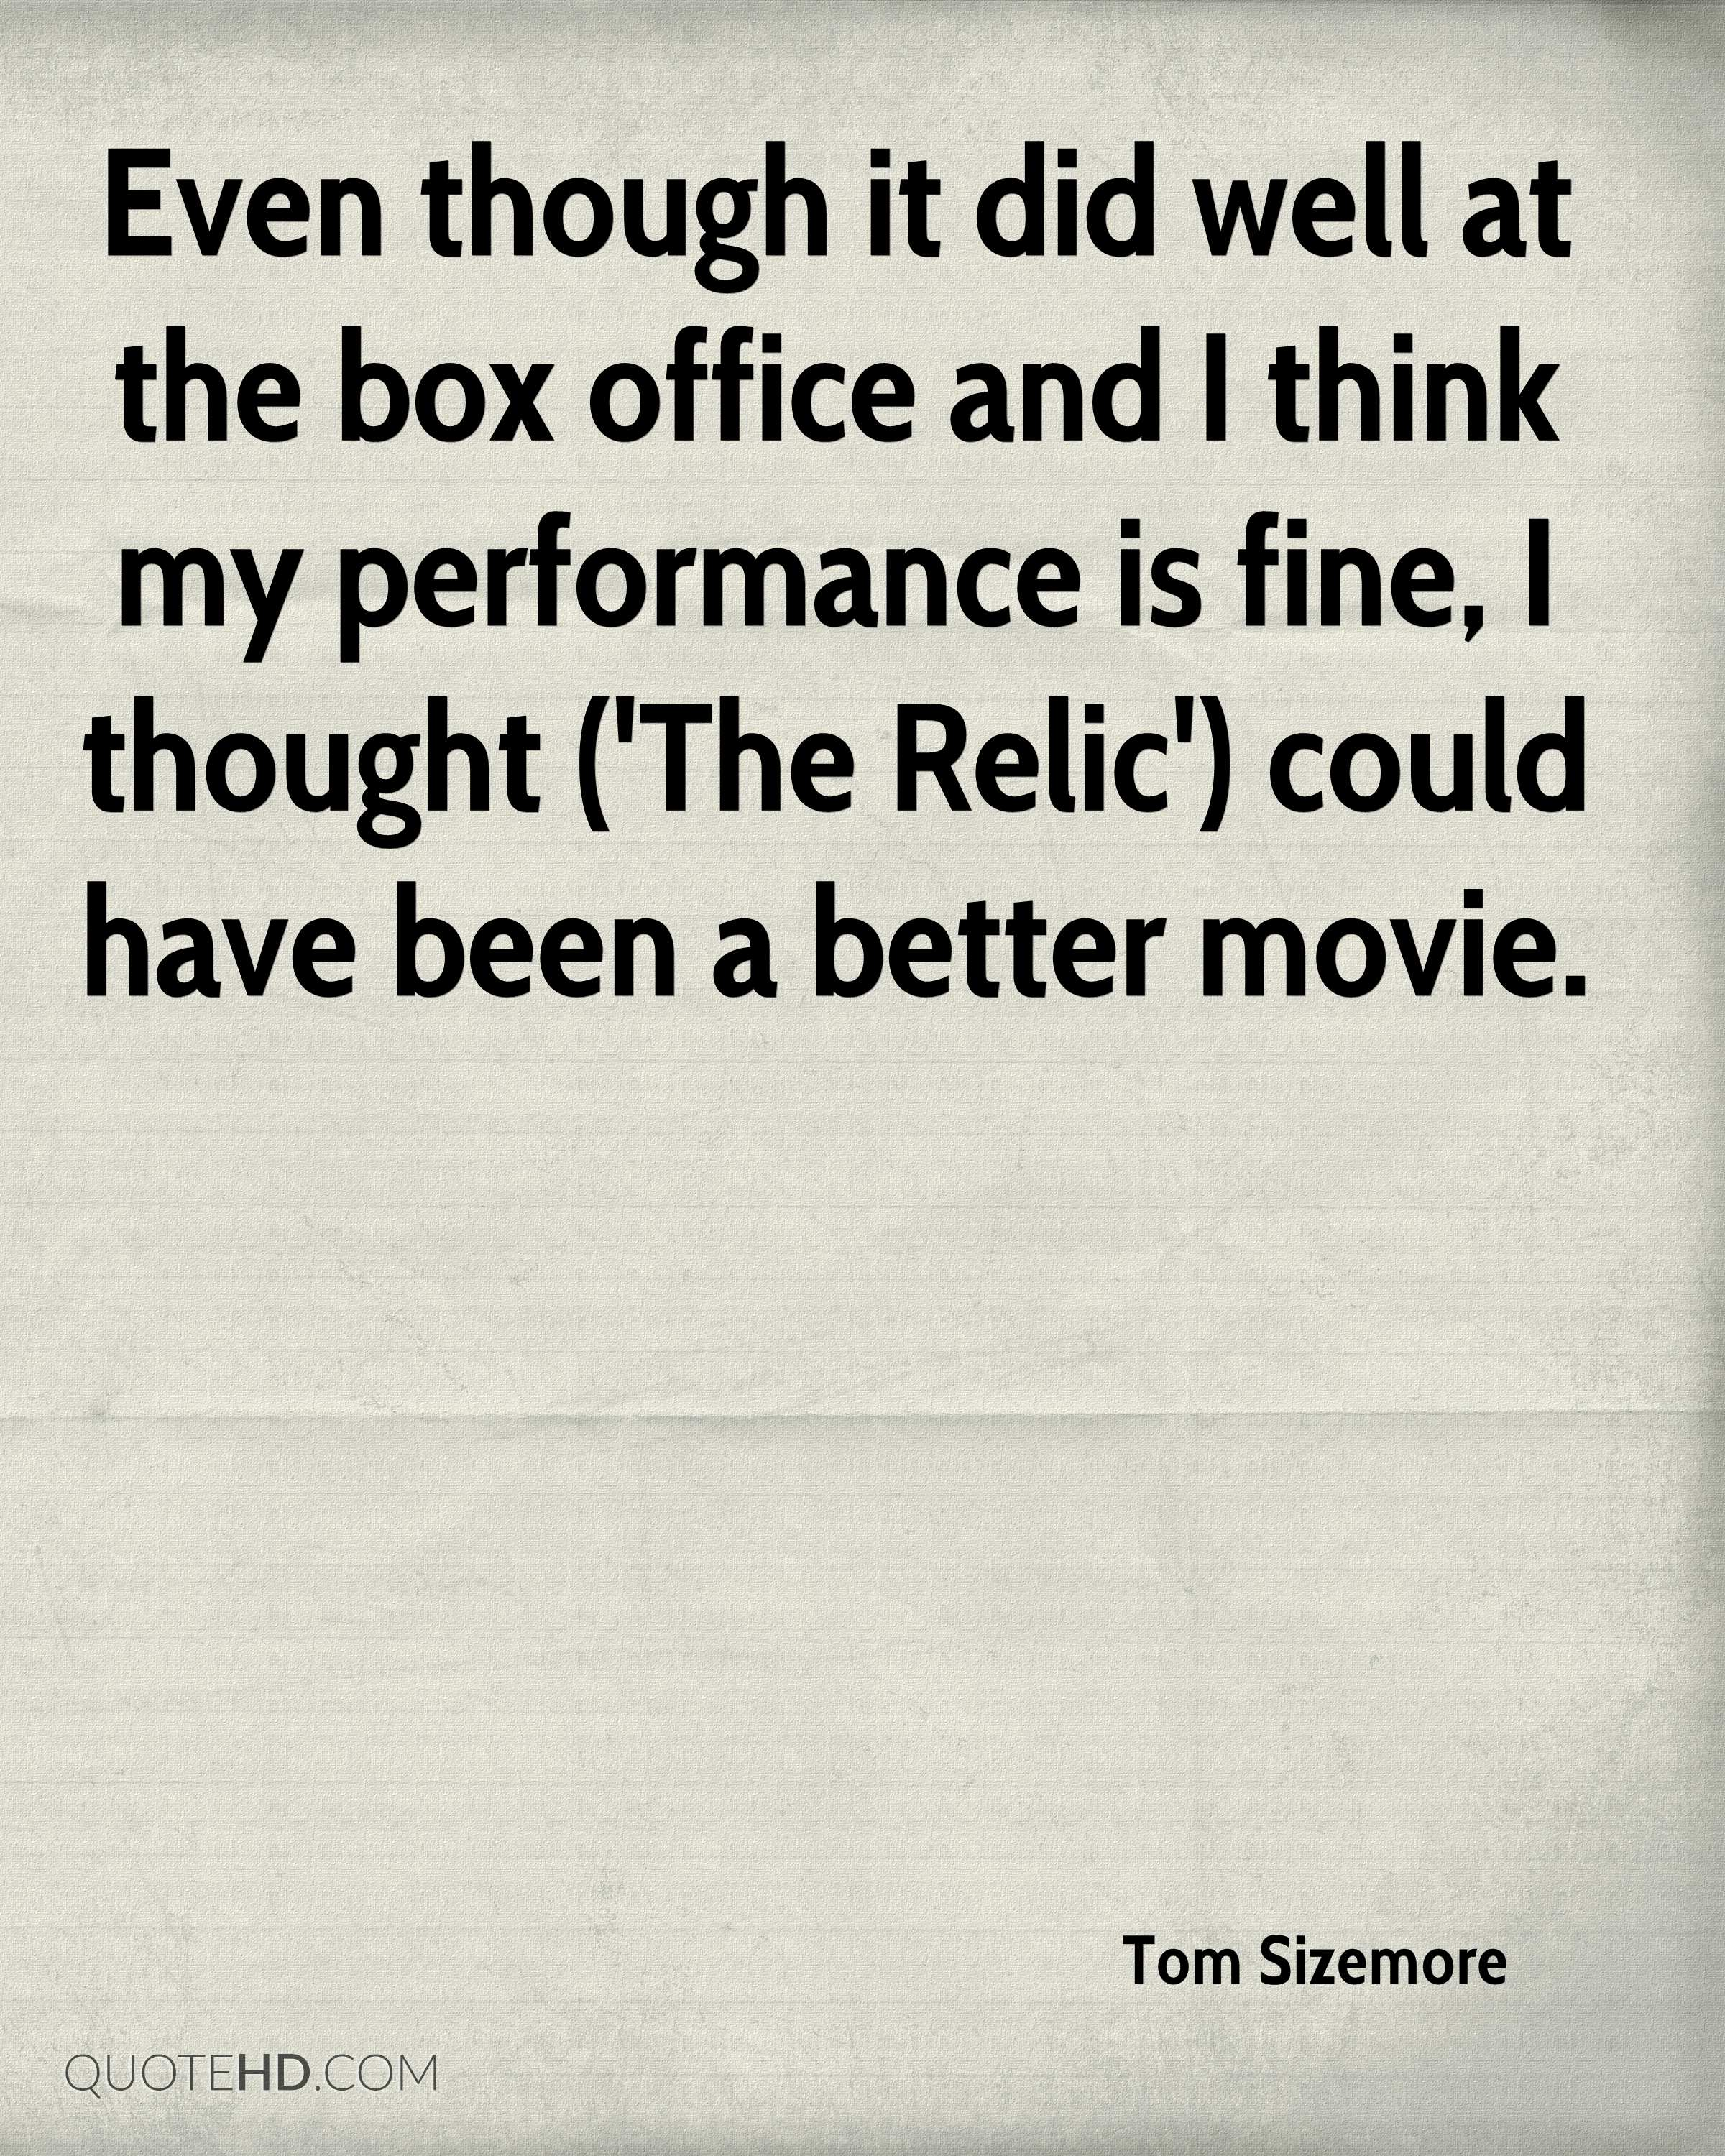 Even though it did well at the box office and I think my performance is fine, I thought ('The Relic') could have been a better movie.